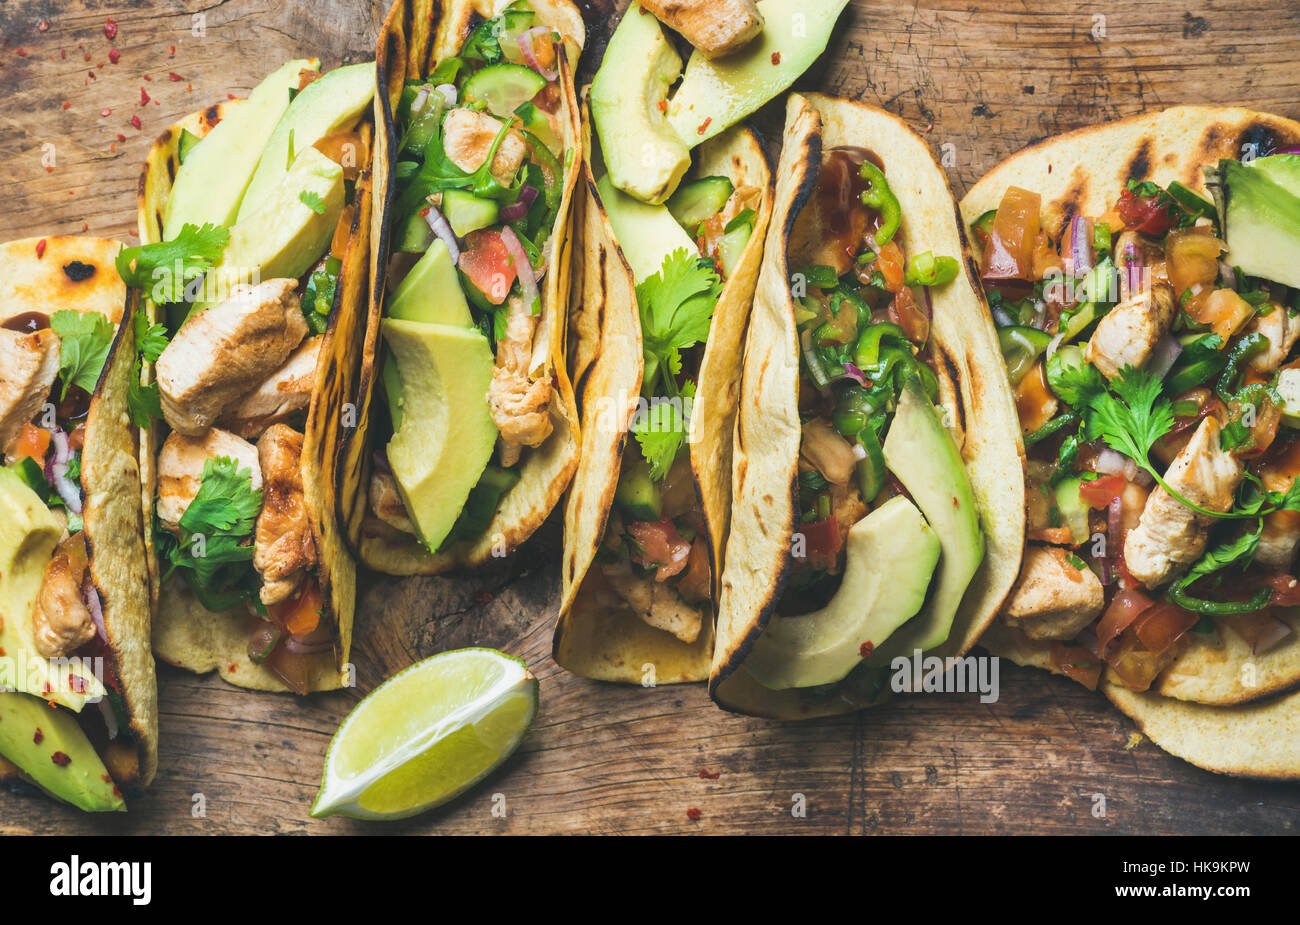 Tacos with grilled chicken, avocado, fresh salsa sauce and limes over rustic wooden background, top view. Healthy - Stock Image